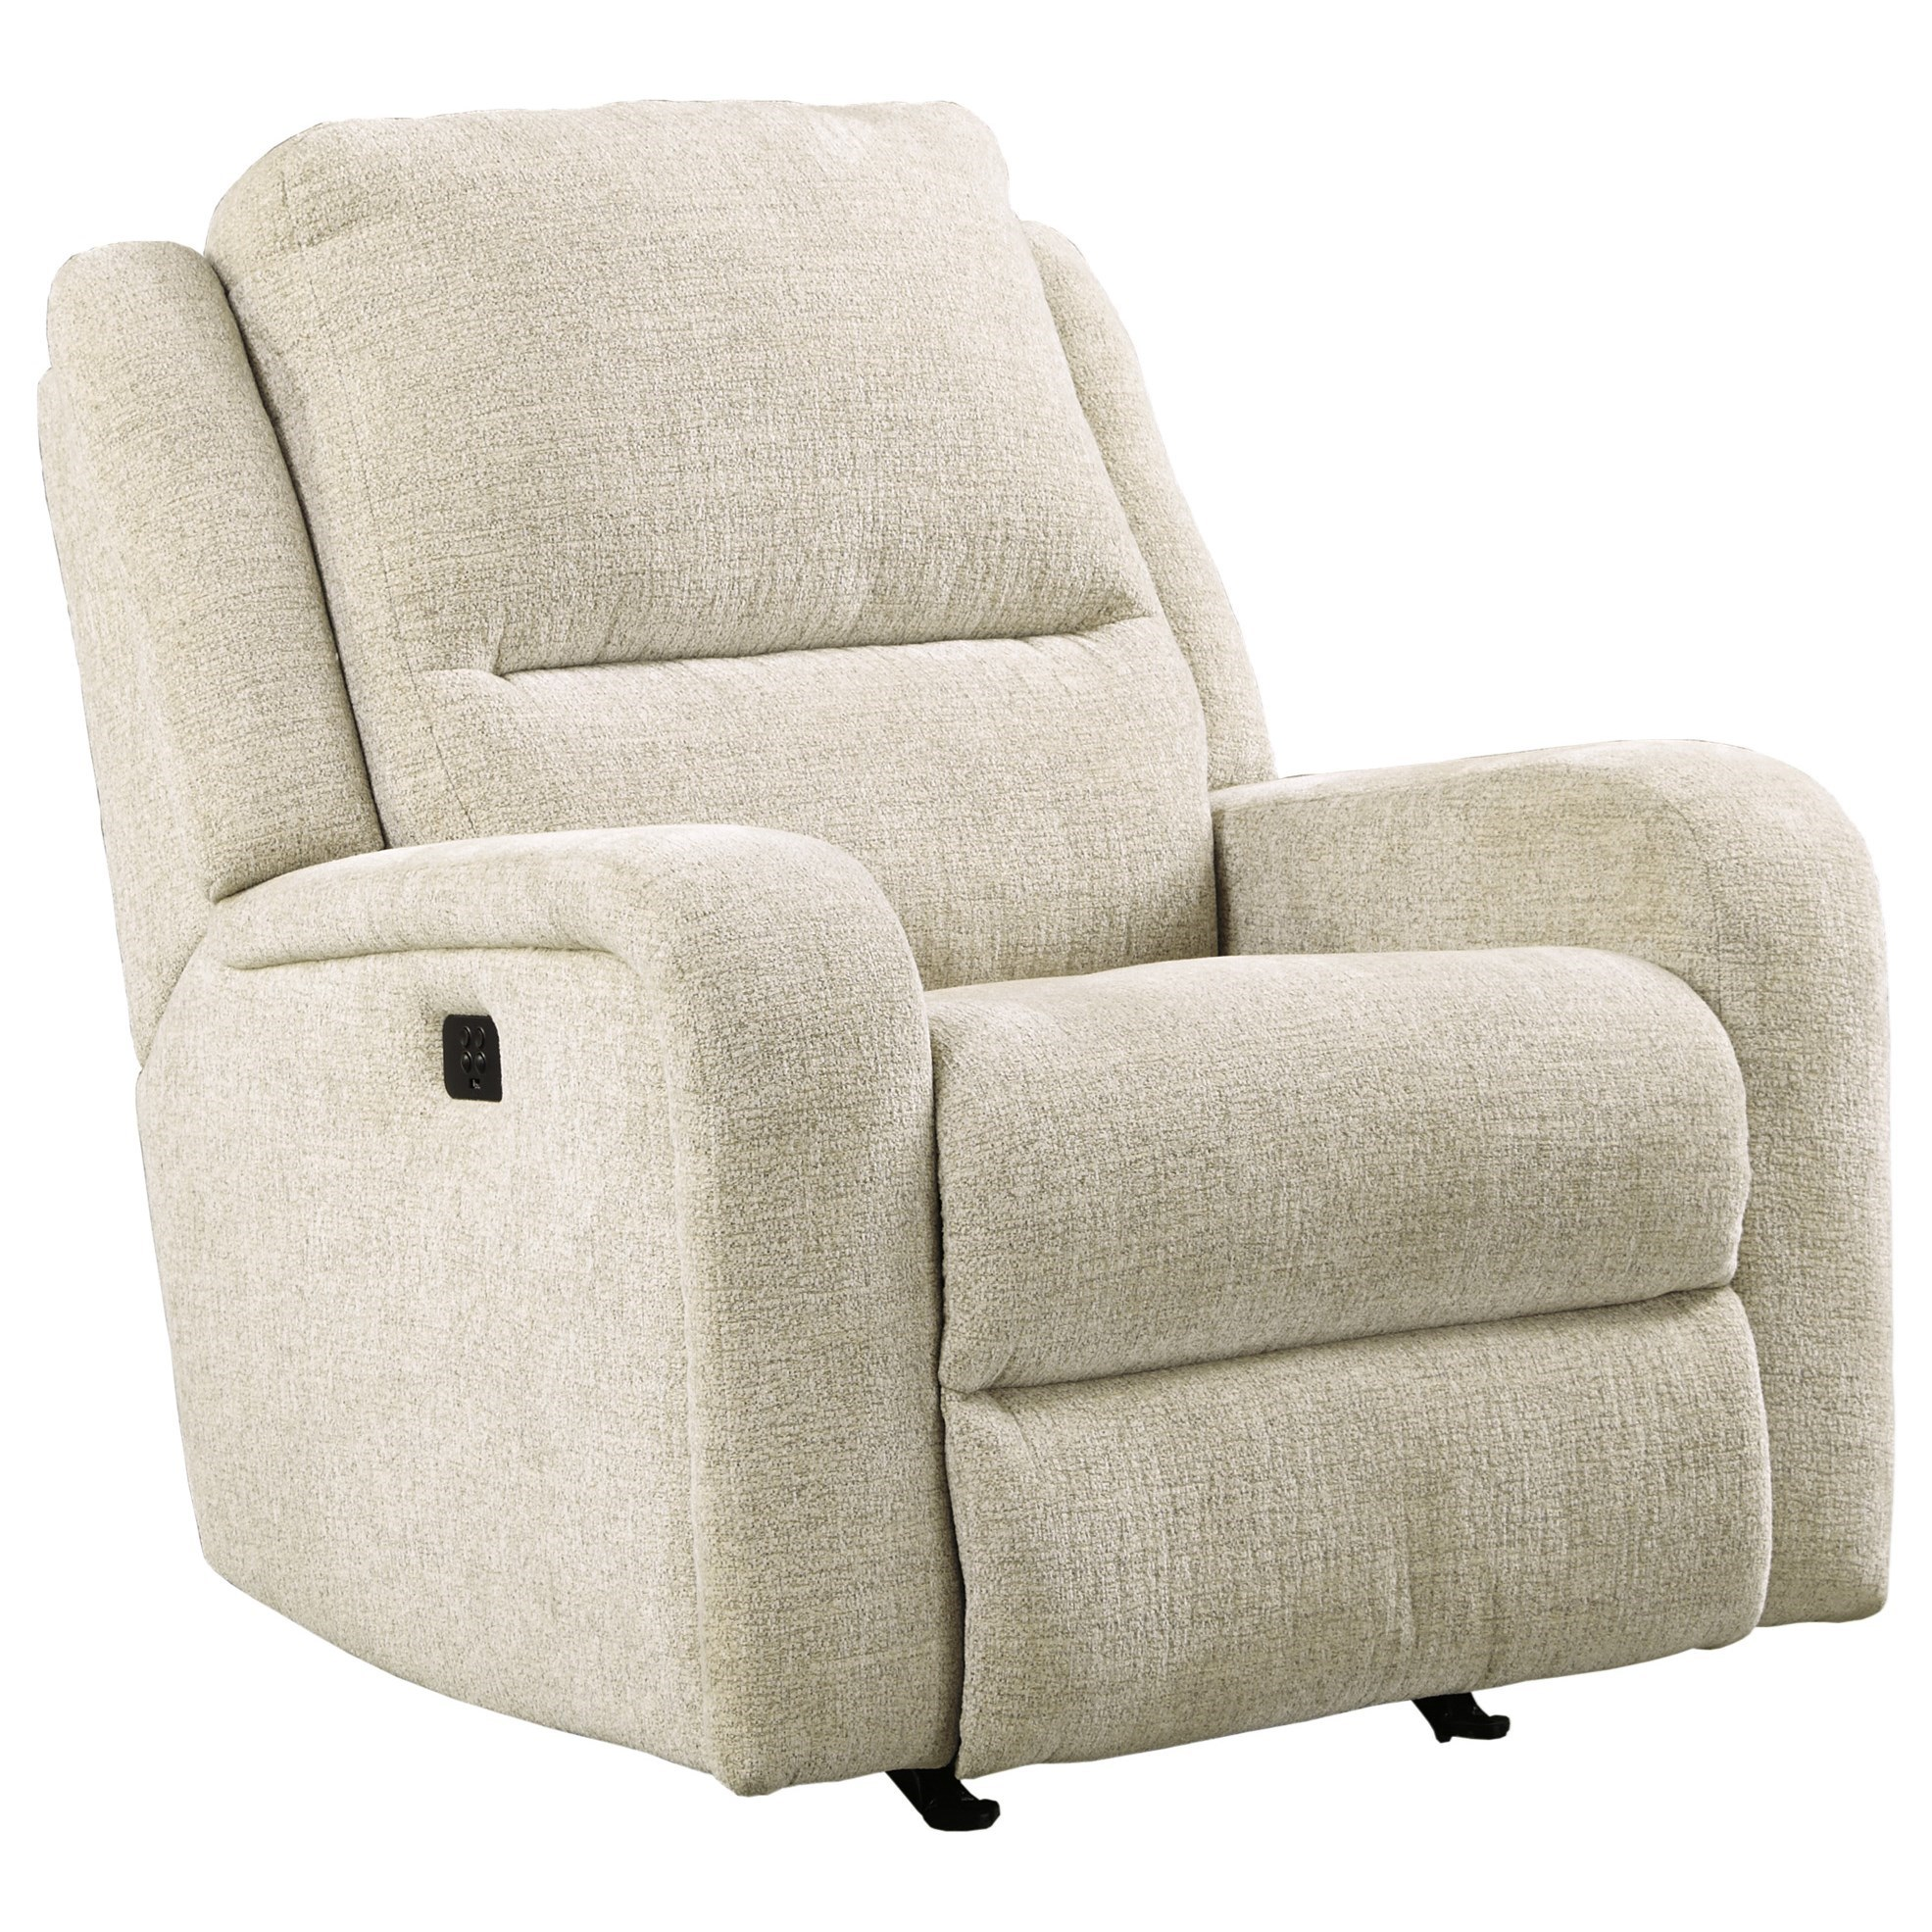 Signature Design by Ashley Krismen Power Rocker Recliner w/ Adjustable Headrest - Item Number: 7810313